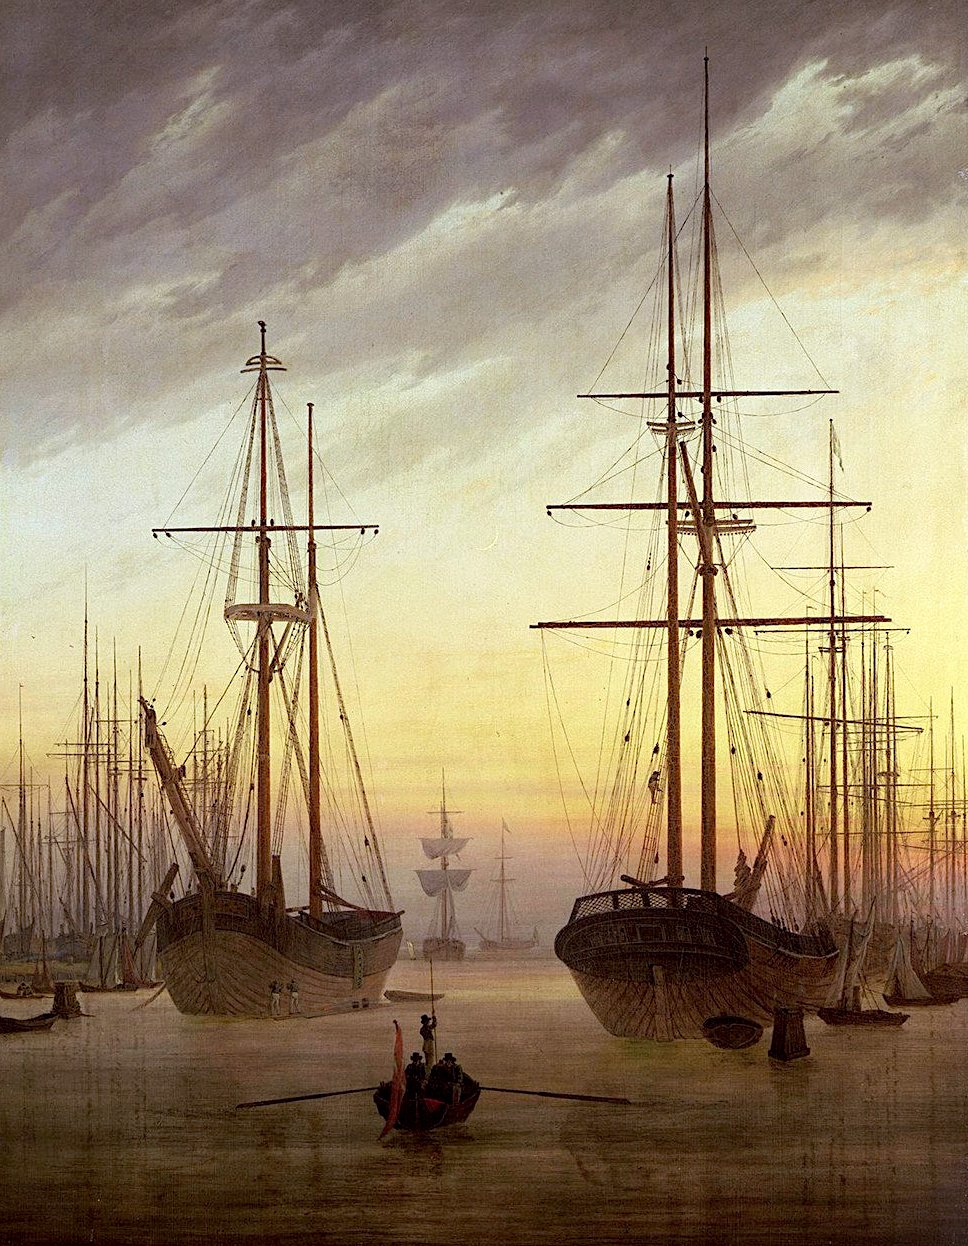 a painting by Caspar David Friedrich, ships in harbour at golden sunset